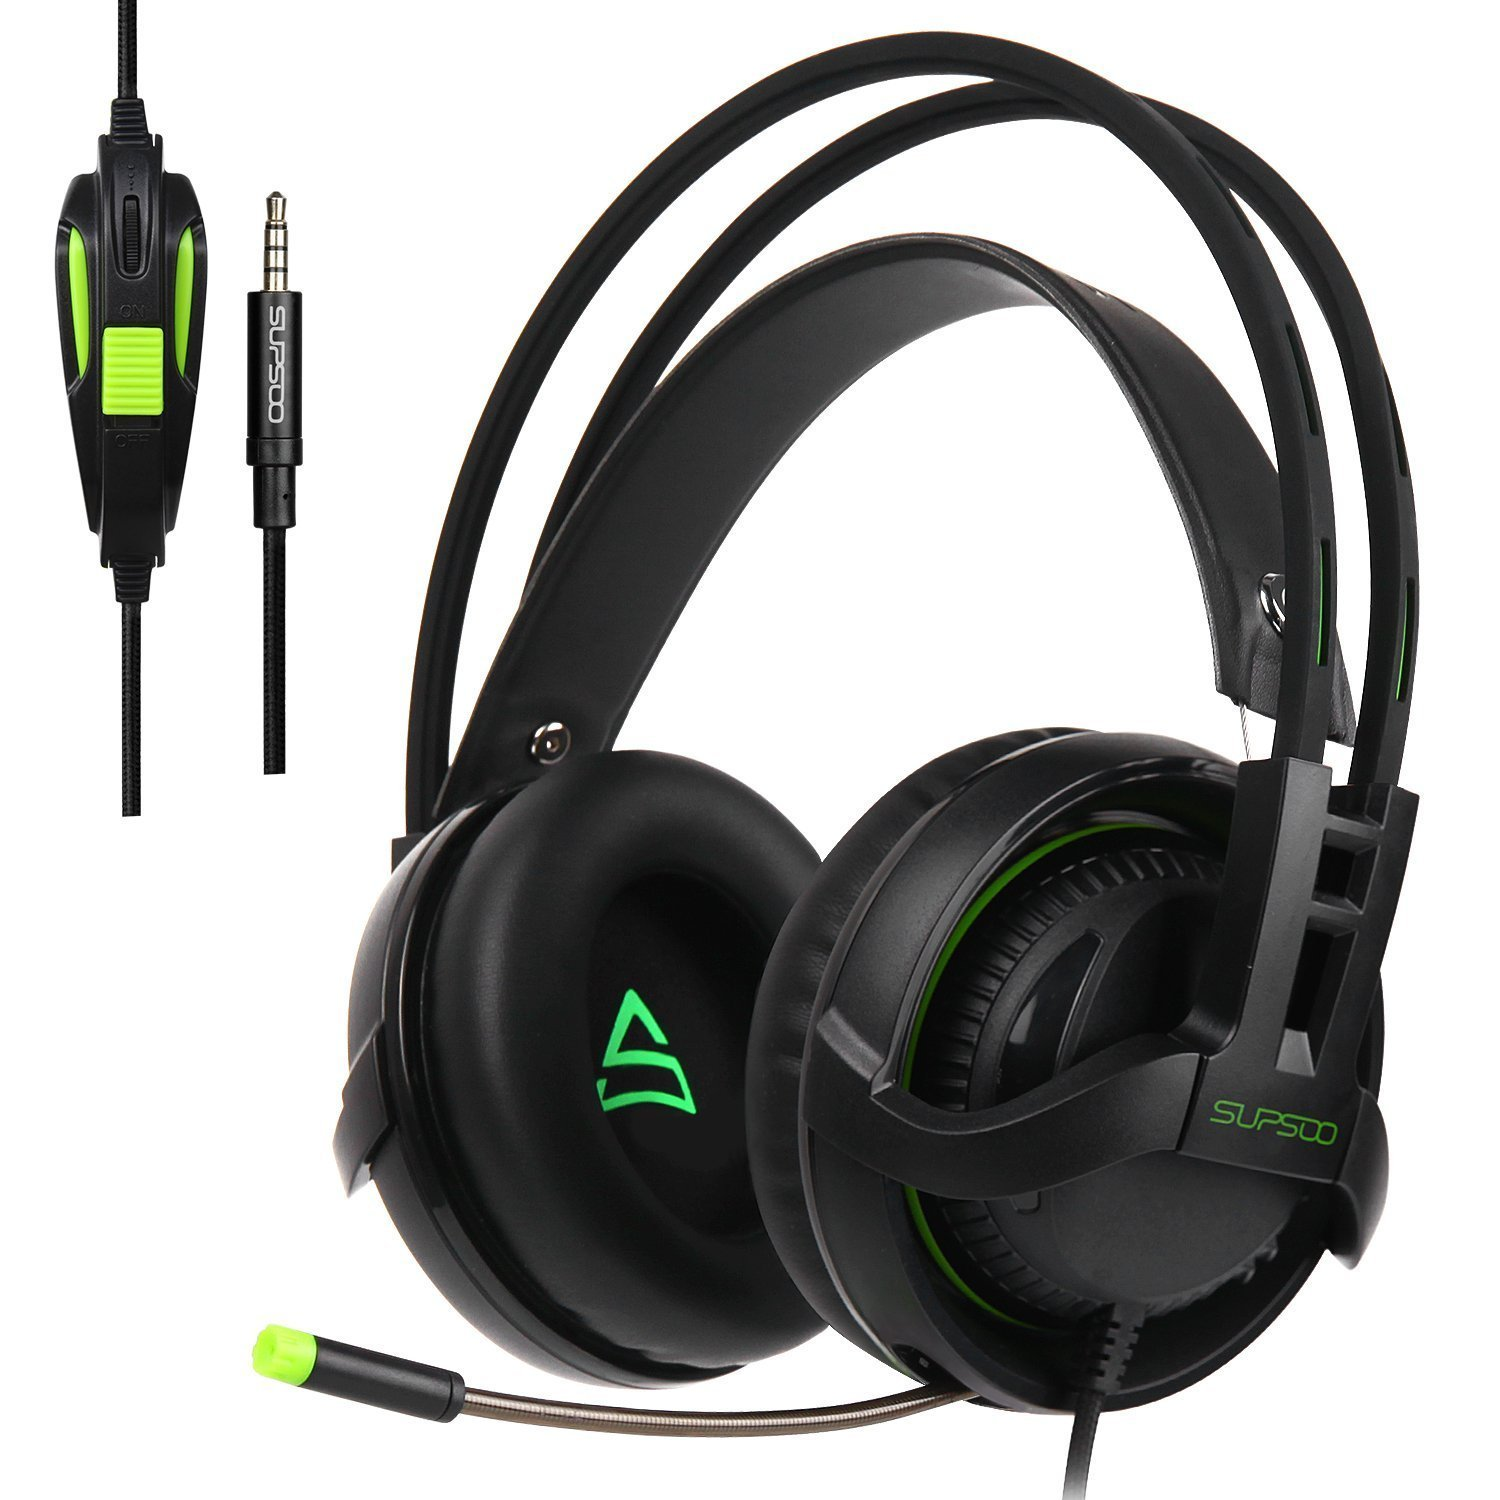 Recensione - Gaming Headset over-ear cuffie G810 - Supsoo 2101e64afc64